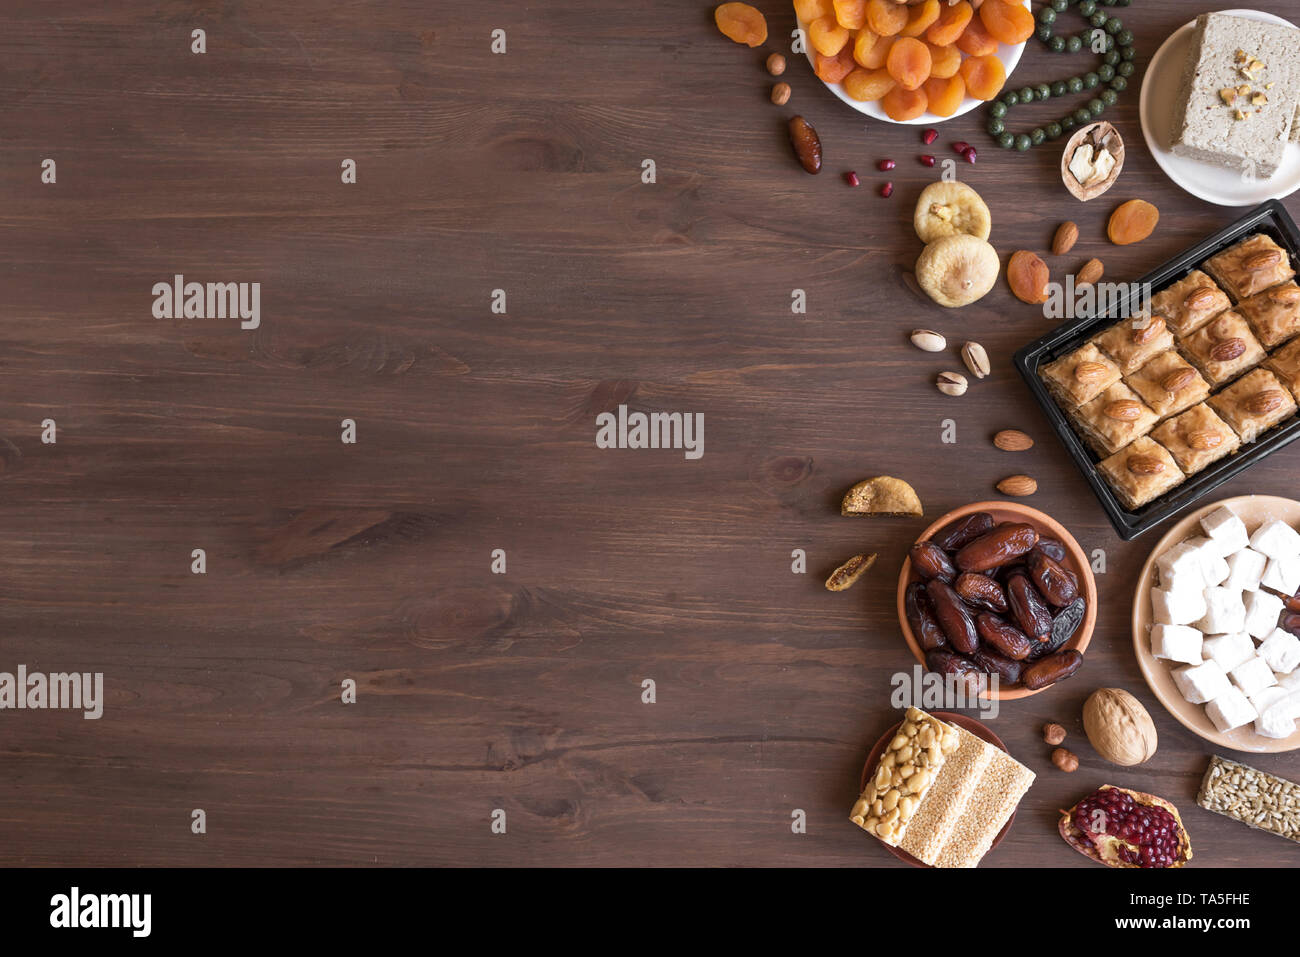 Assortment, set of Eastern, Arabic, Turkish sweets, nuts and dried fruits on wooden table, top view, copy space. Holiday Middle Eastern traditional sw - Stock Image